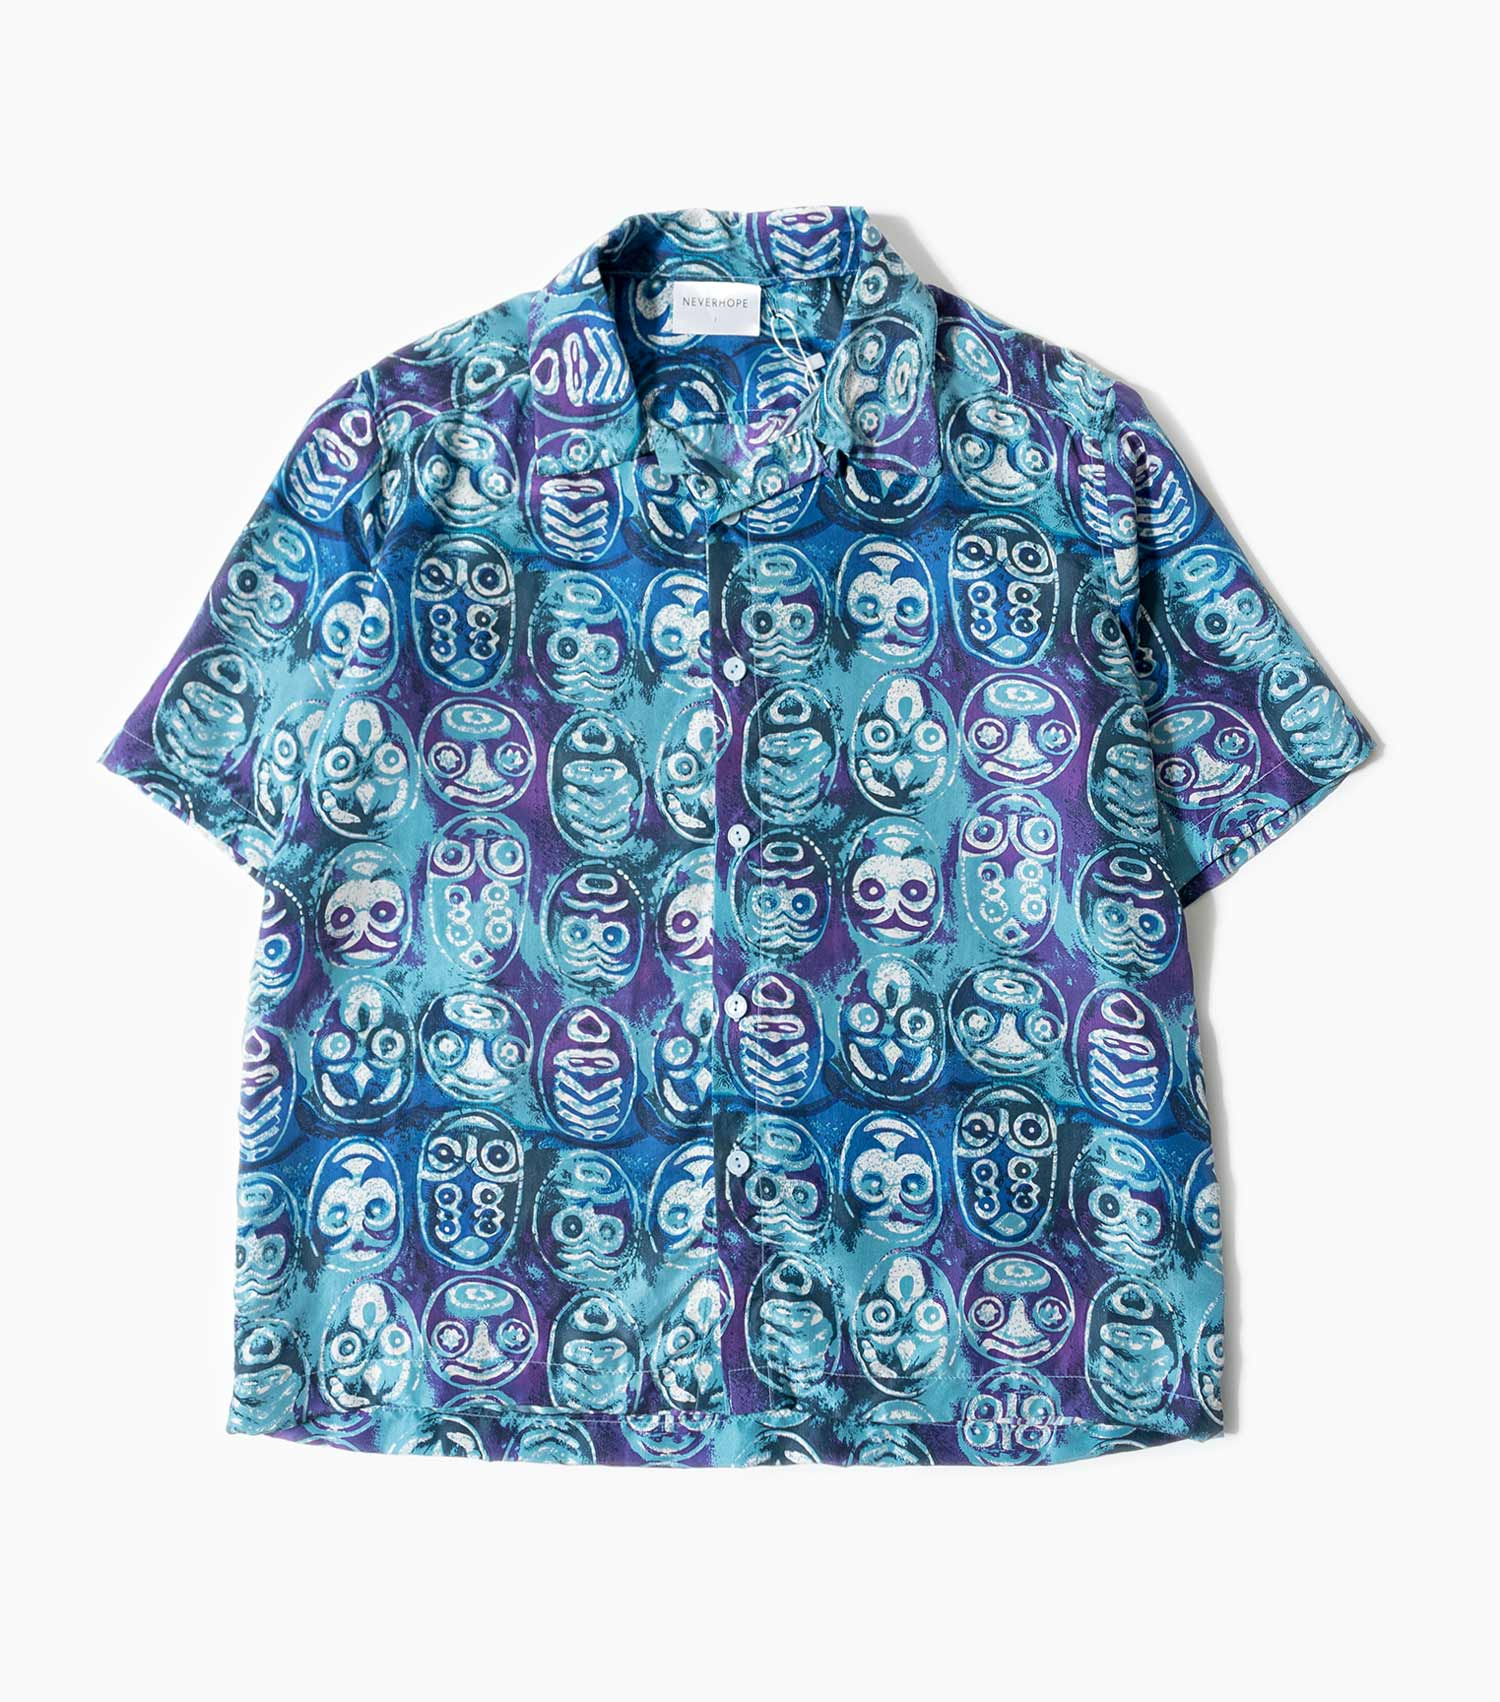 Neverhope Mask Print Shirt - Teal/Purple